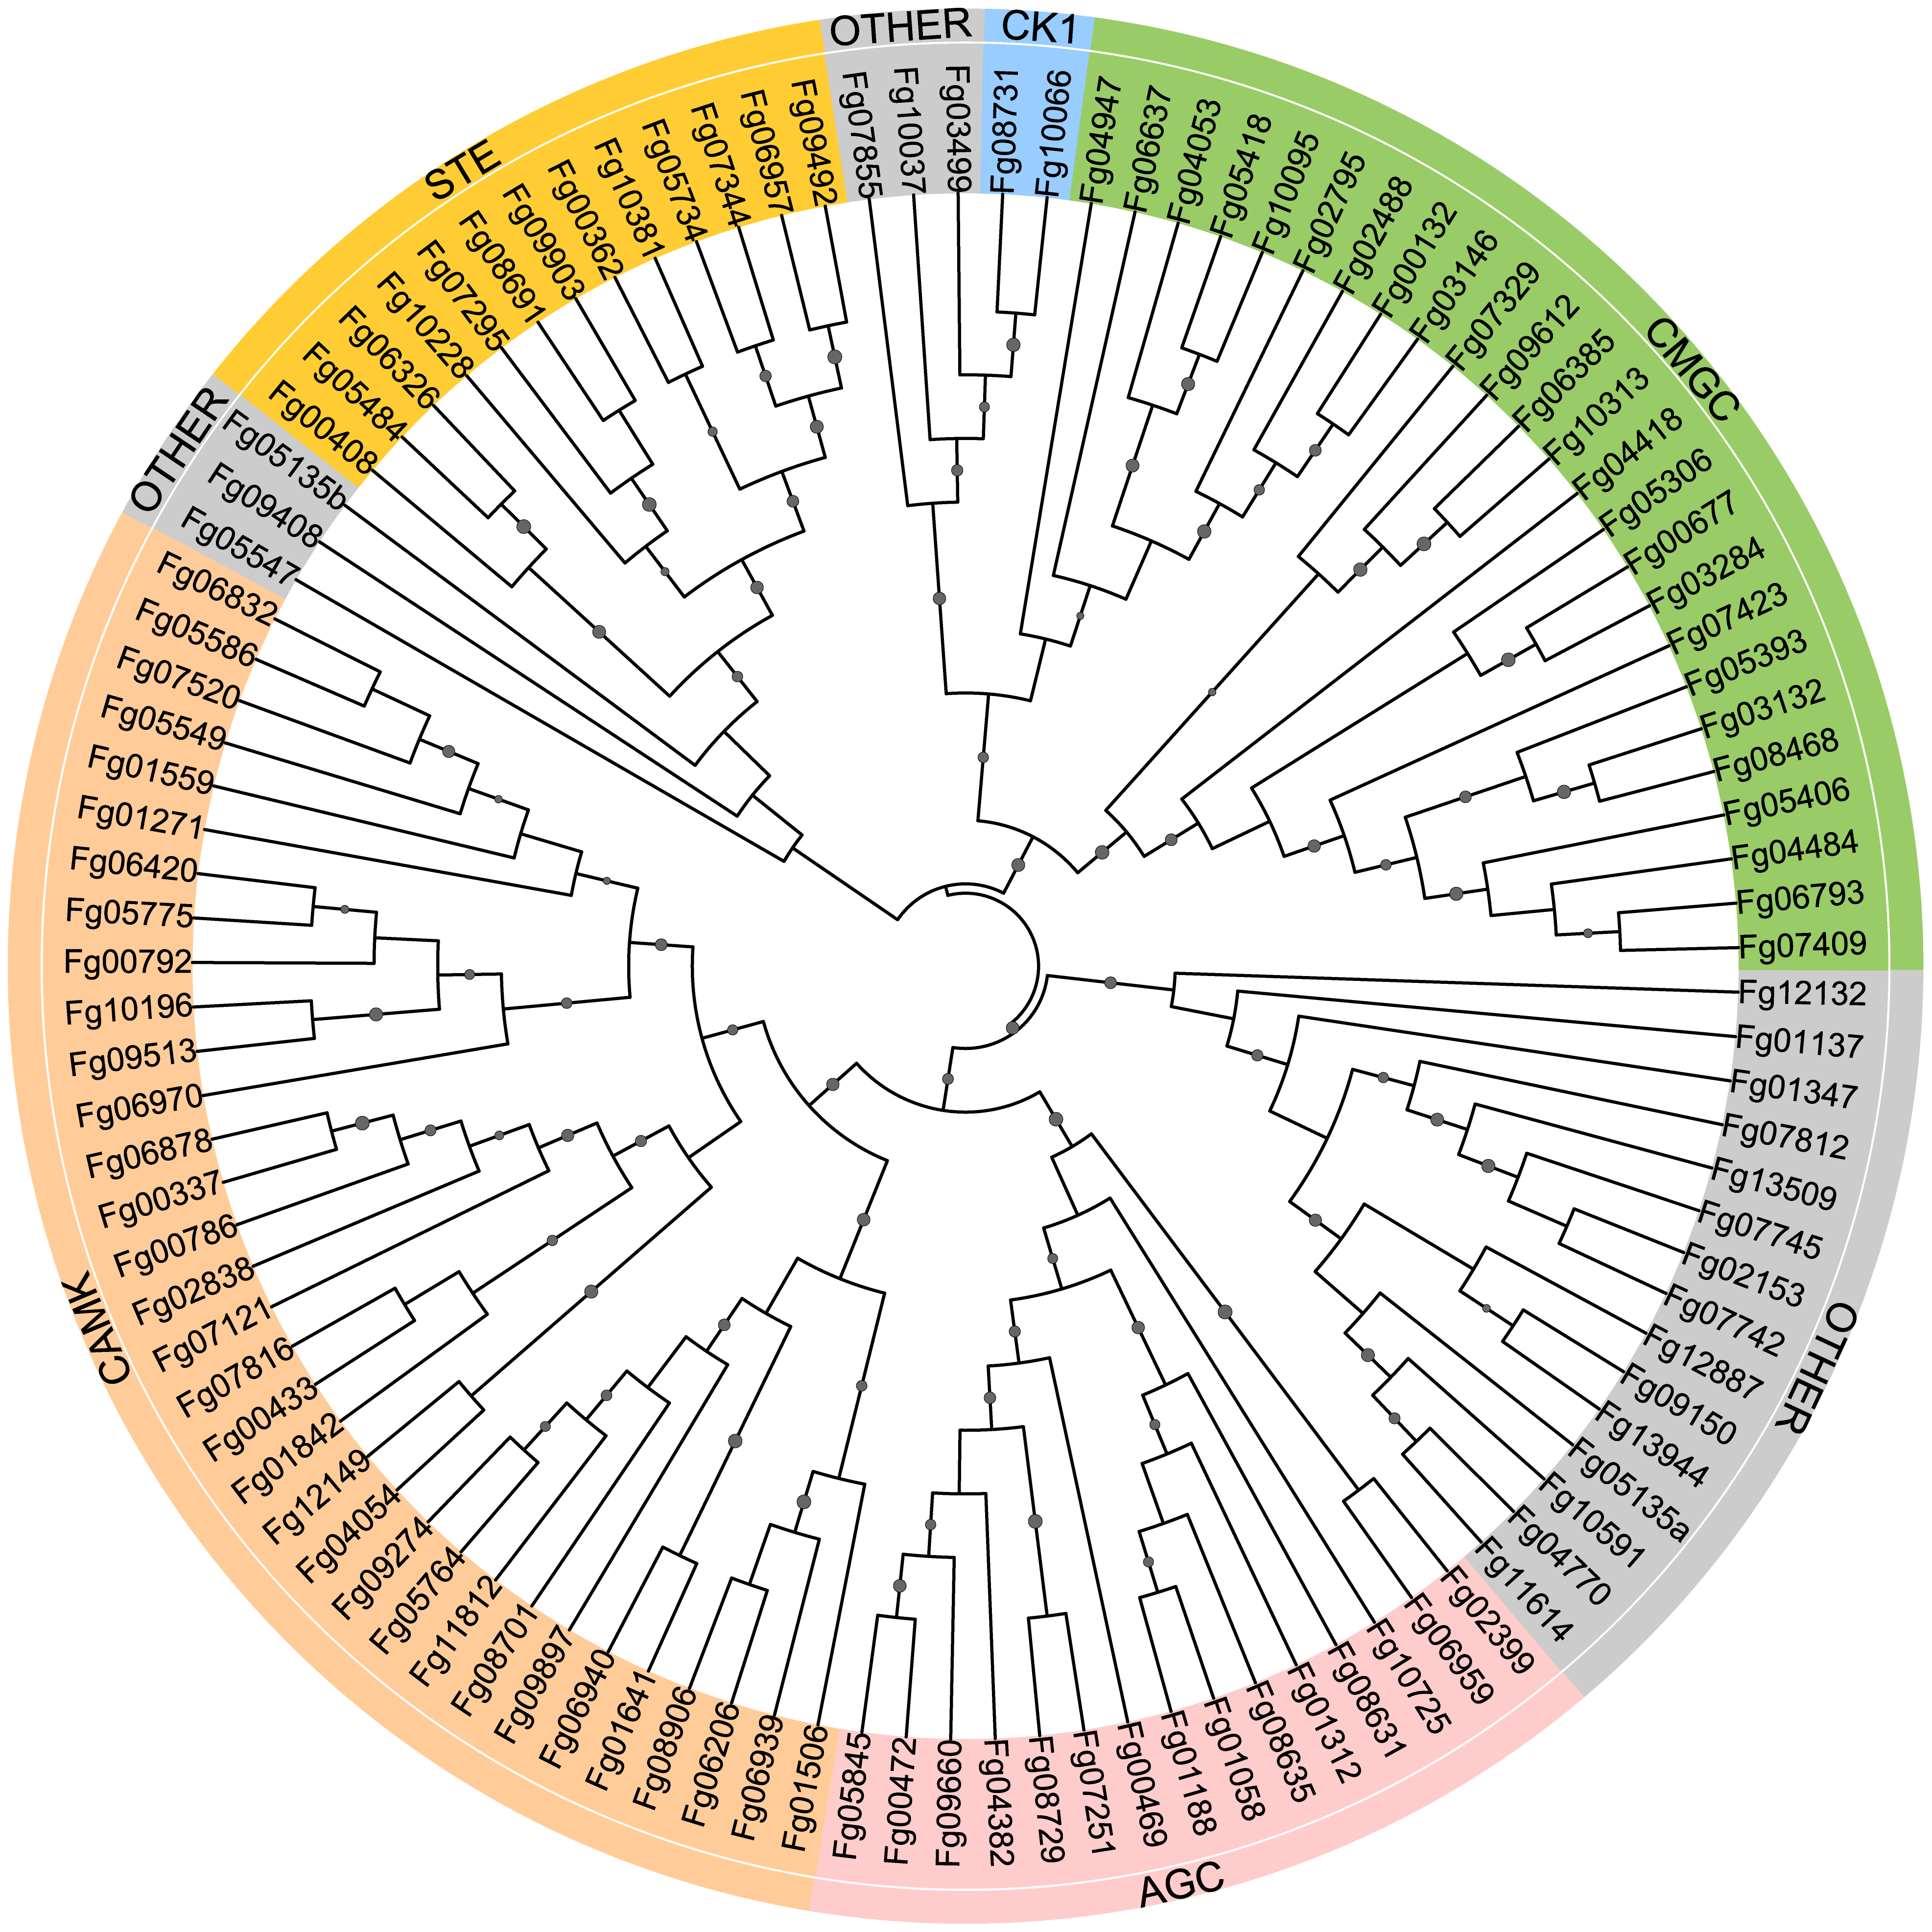 Phylogenetic analysis with the conventional protein kinase (ePK) genes of <i>Fusarium graminearum.</i>